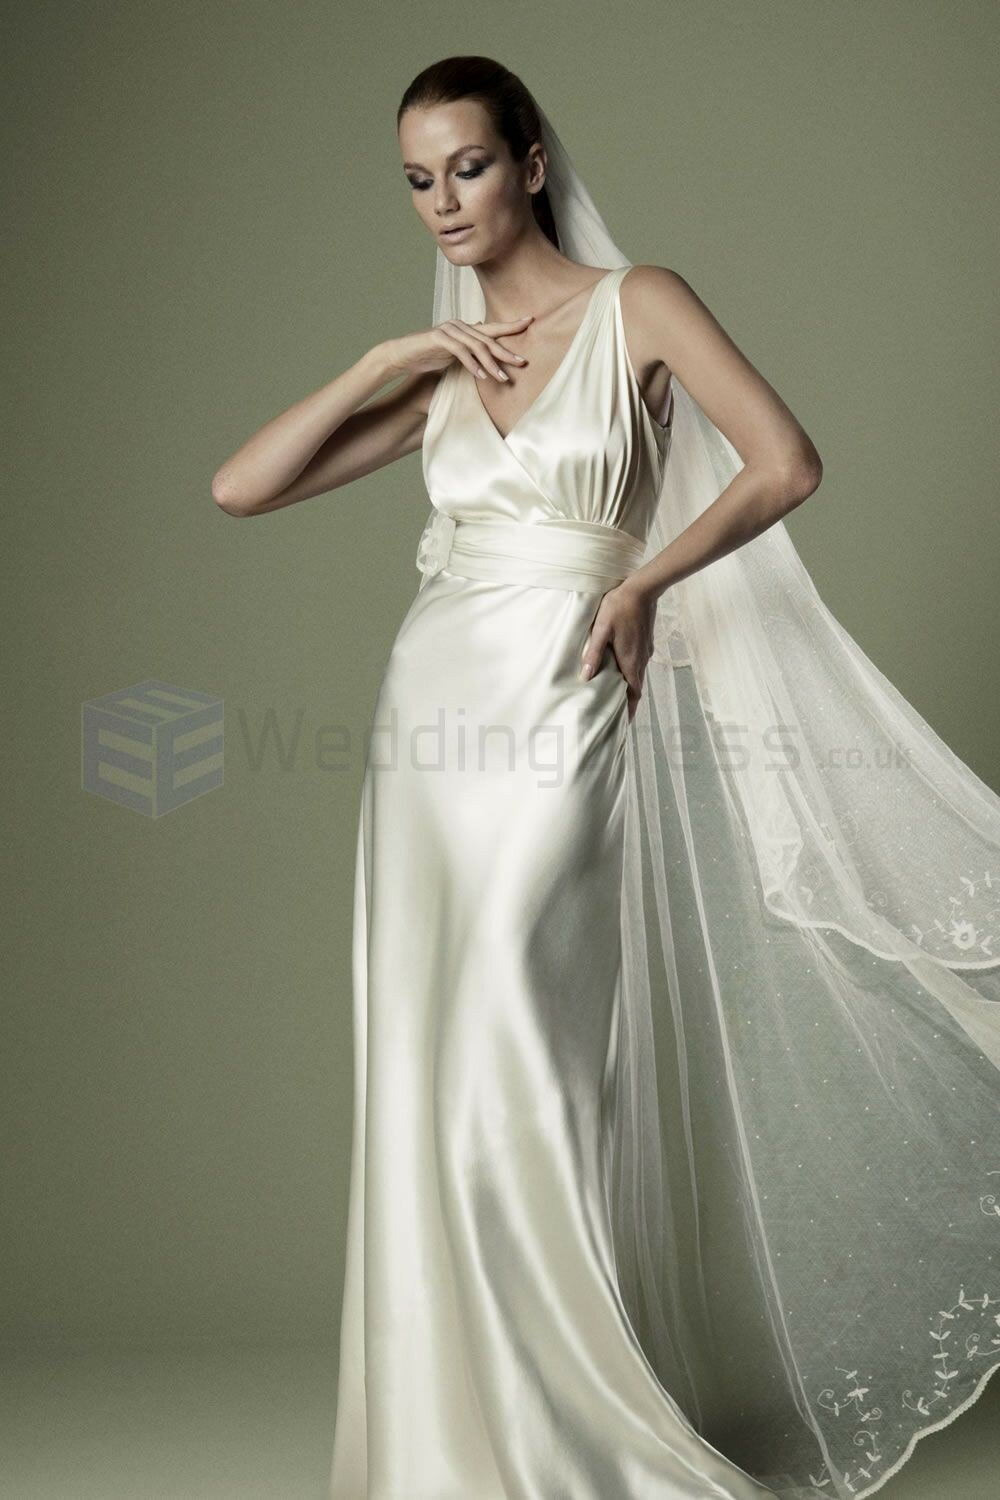 1930s style wedding dresses: Pictures ideas, Guide to buying ...